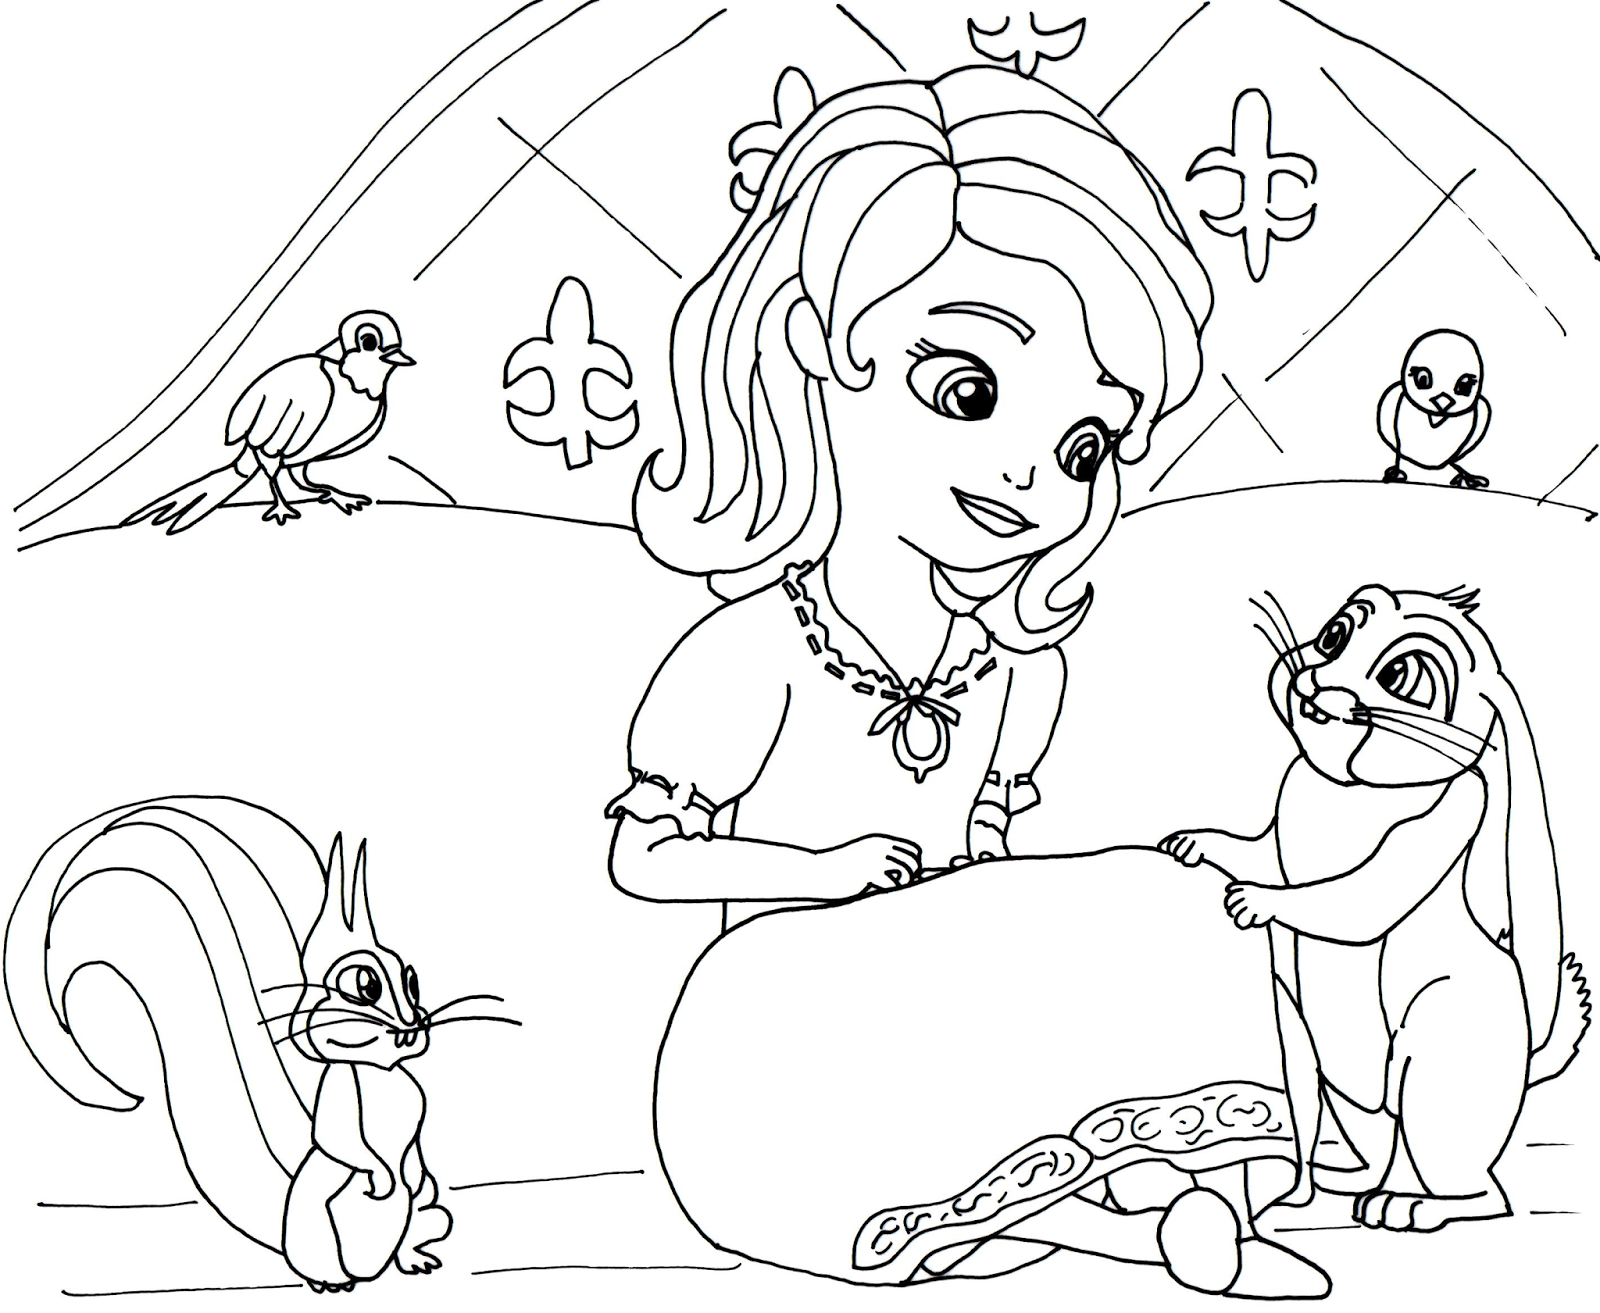 Princess sophia printable coloring pages - Sofia The First Coloring Pages Printable Tagged With Princess Sofia Coloring Pages 5